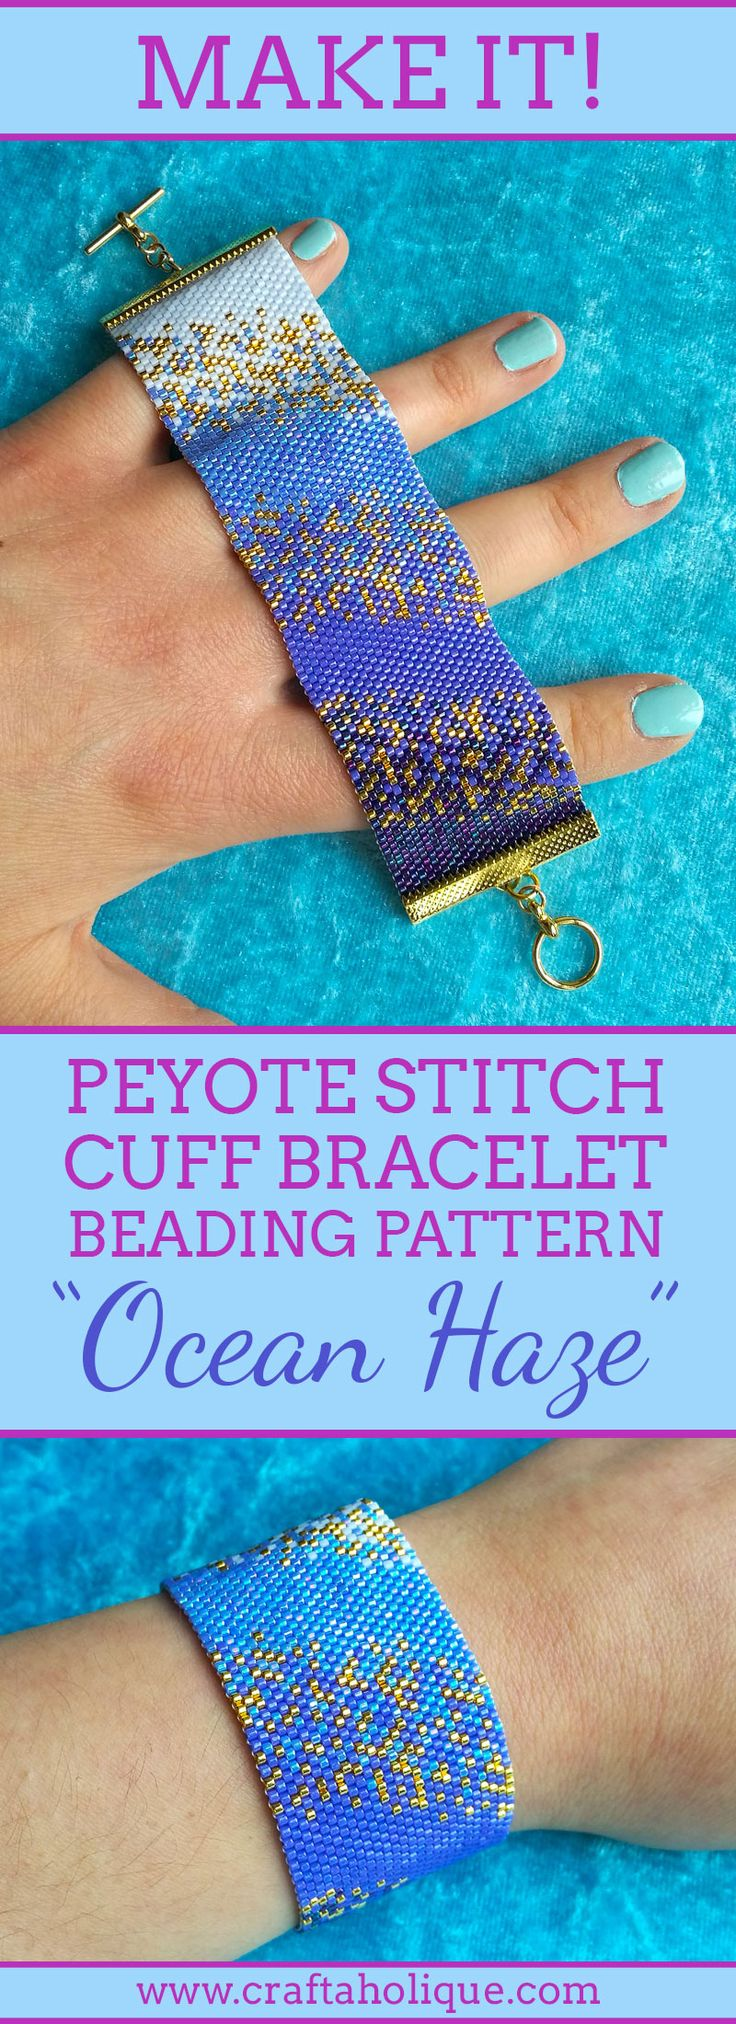 Make this beautiful peyote stitch beaded bracelet, inspired by the glittering blue hues of the ocean! See details about the pattern over at Craftaholique...